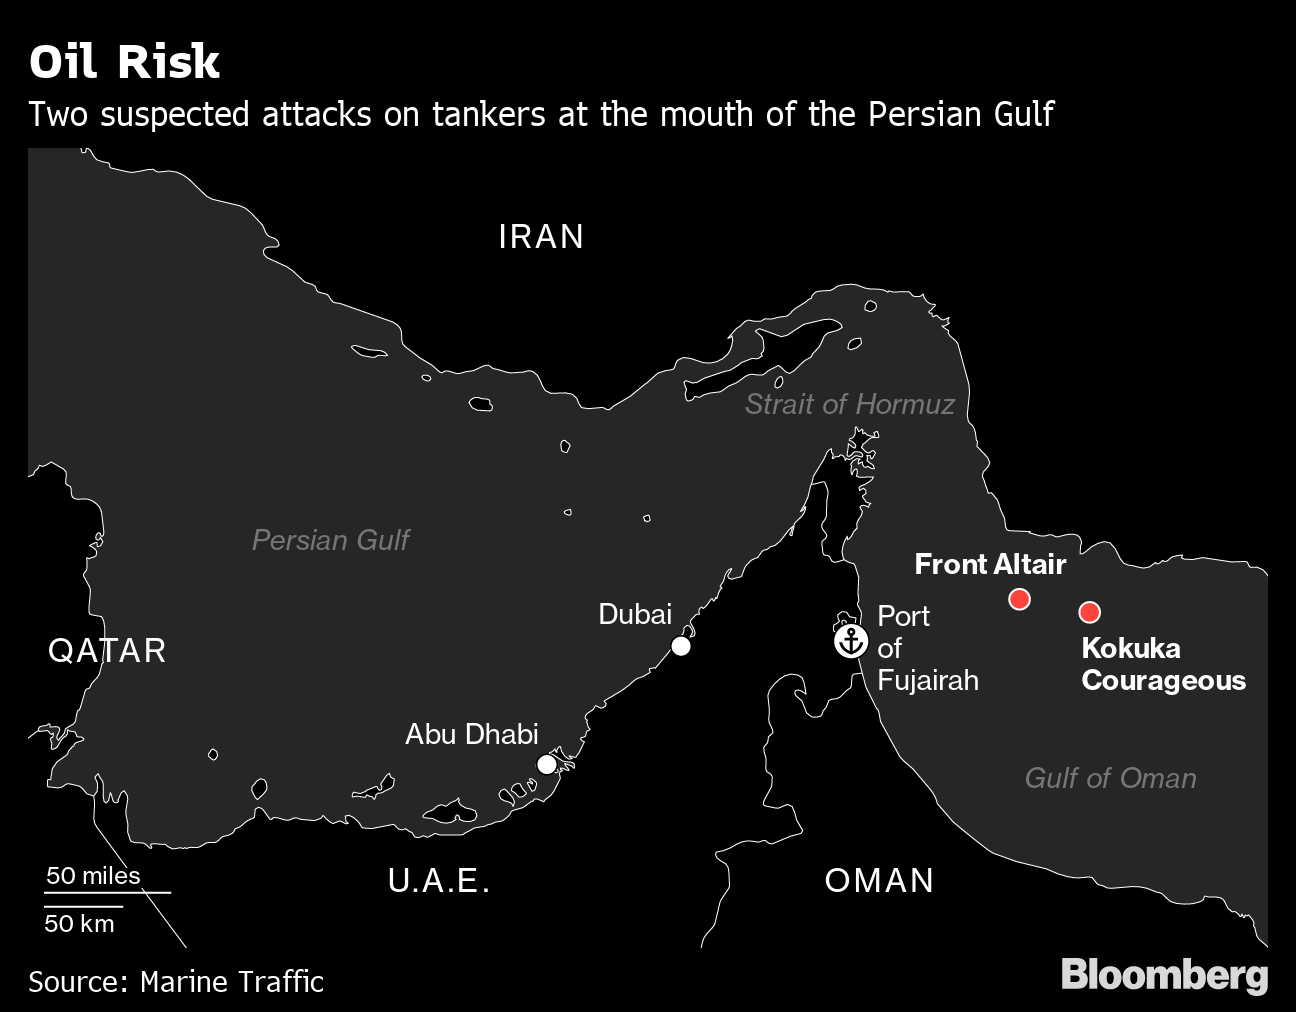 Mike Pompeo blames Iran for oil tanker attacks in Gulf of Oman